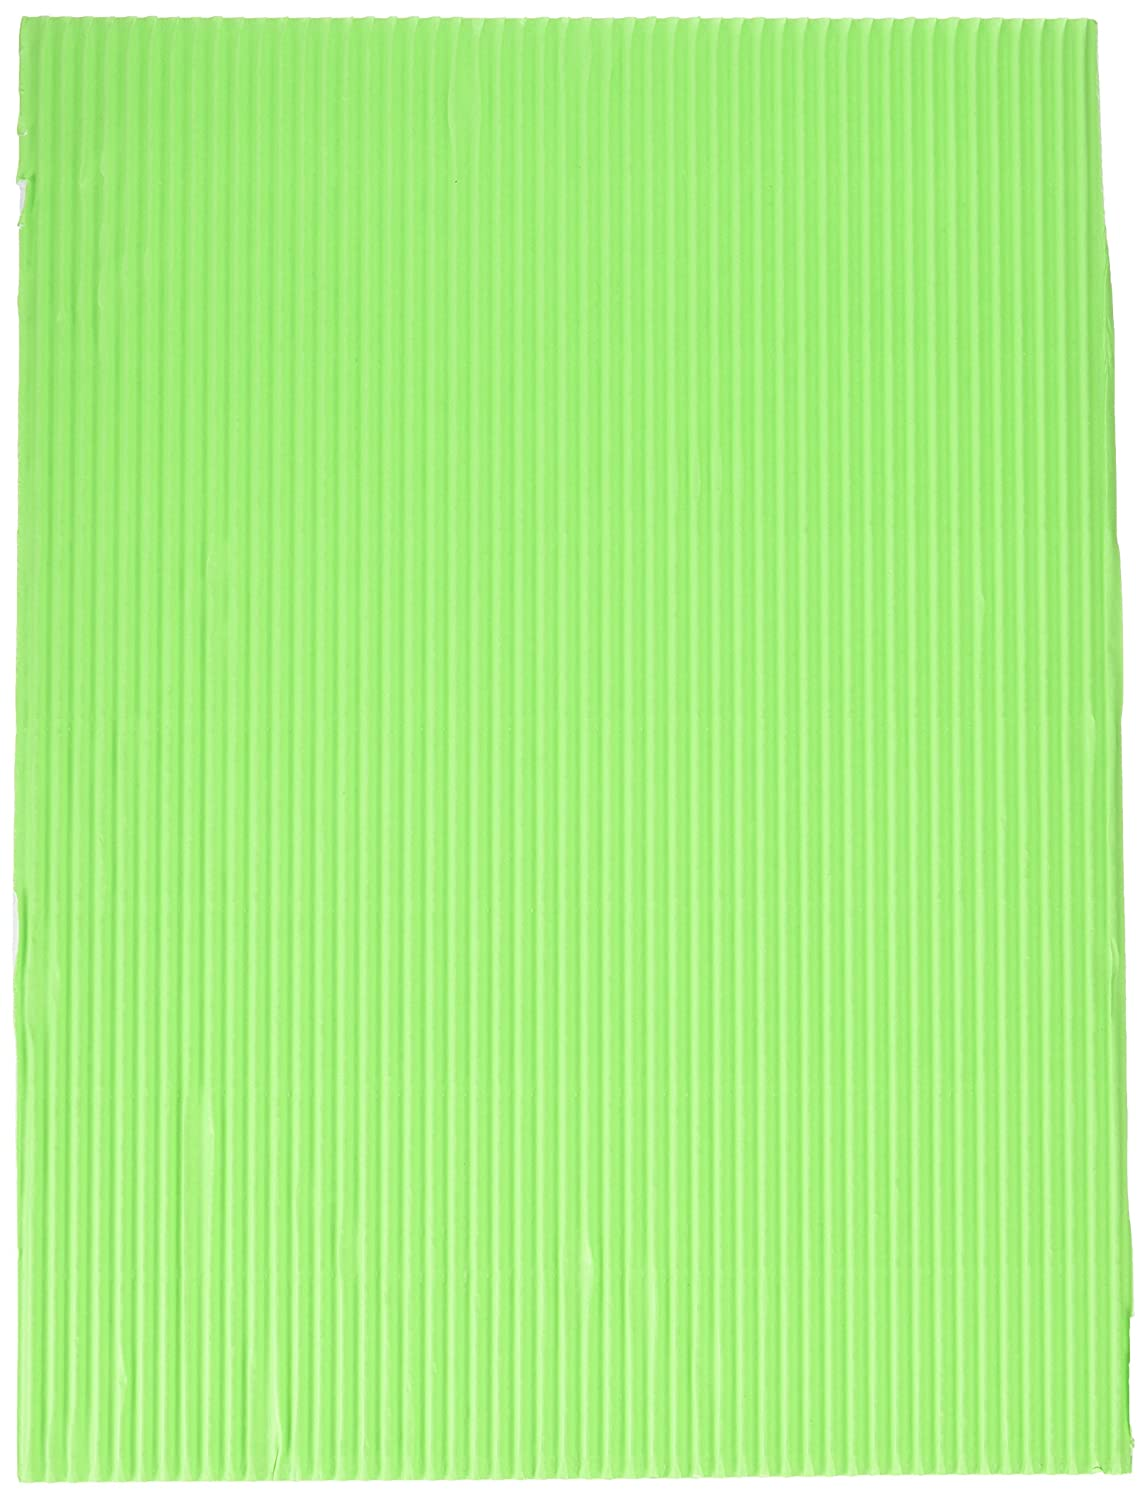 Corobuff Corrugated Paper Assorted Bright Color Pack of 12 School Specialty 006321 12 Sheets 12 X 16 in